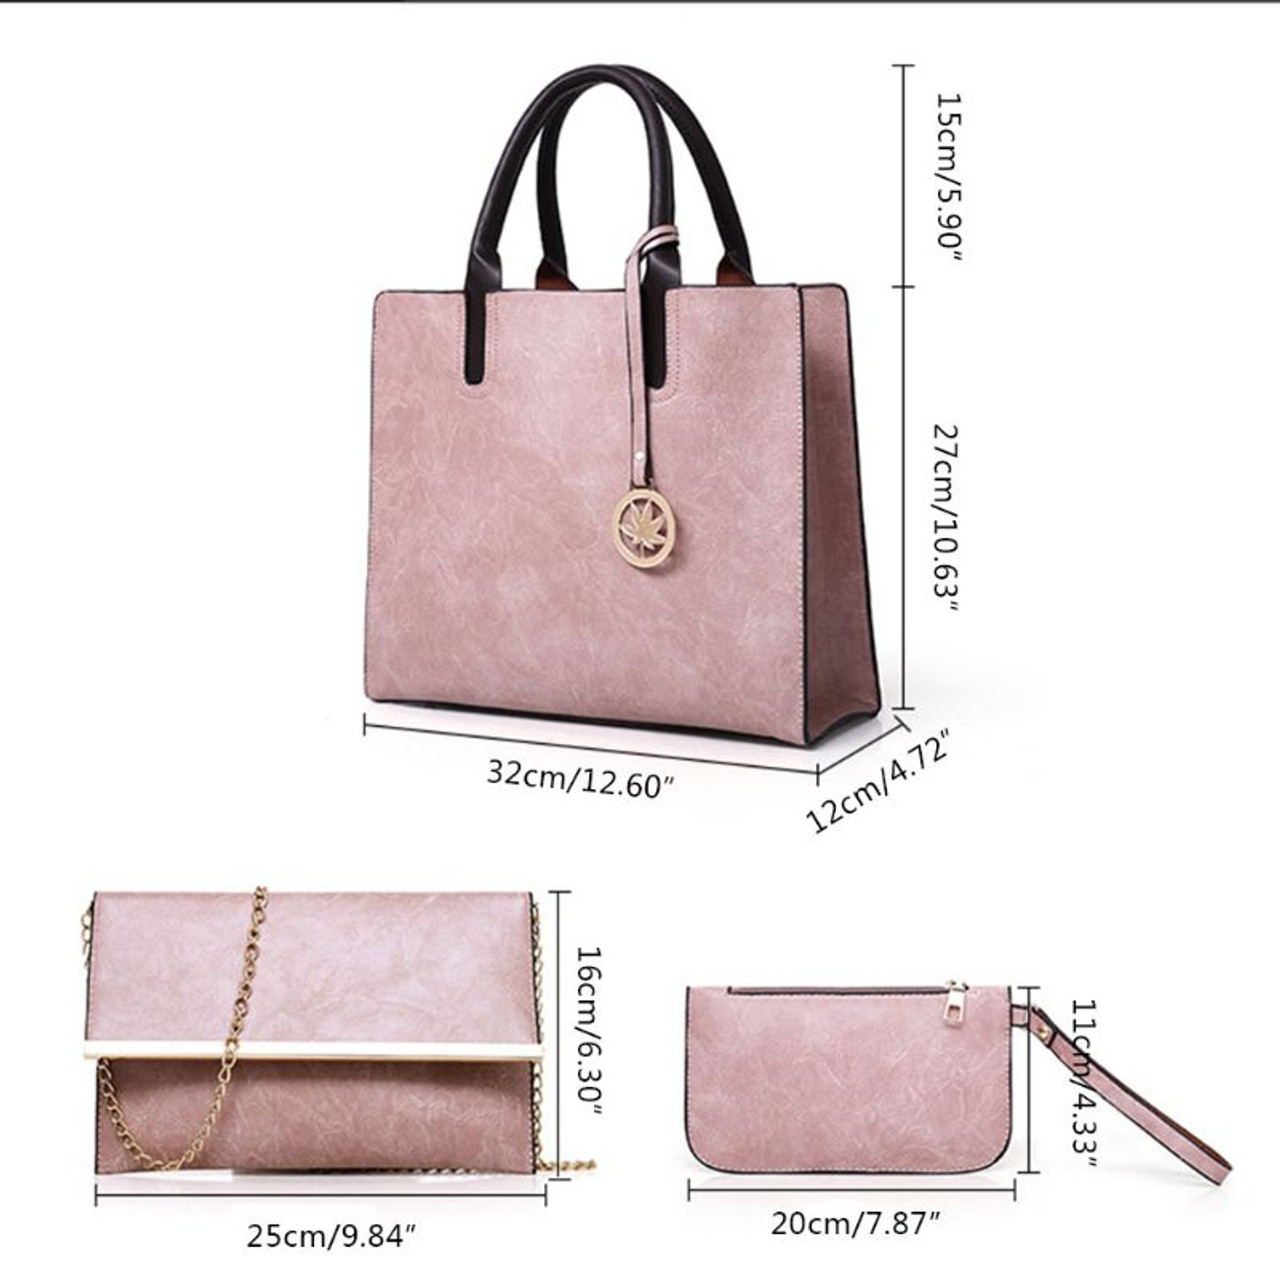 b10f44cc19e ... 2018 Women s Bags Set 3pcs Women s Large Leather Bag Ladies Shoulder  Tote Fashion Messenger Bag Luxury ...